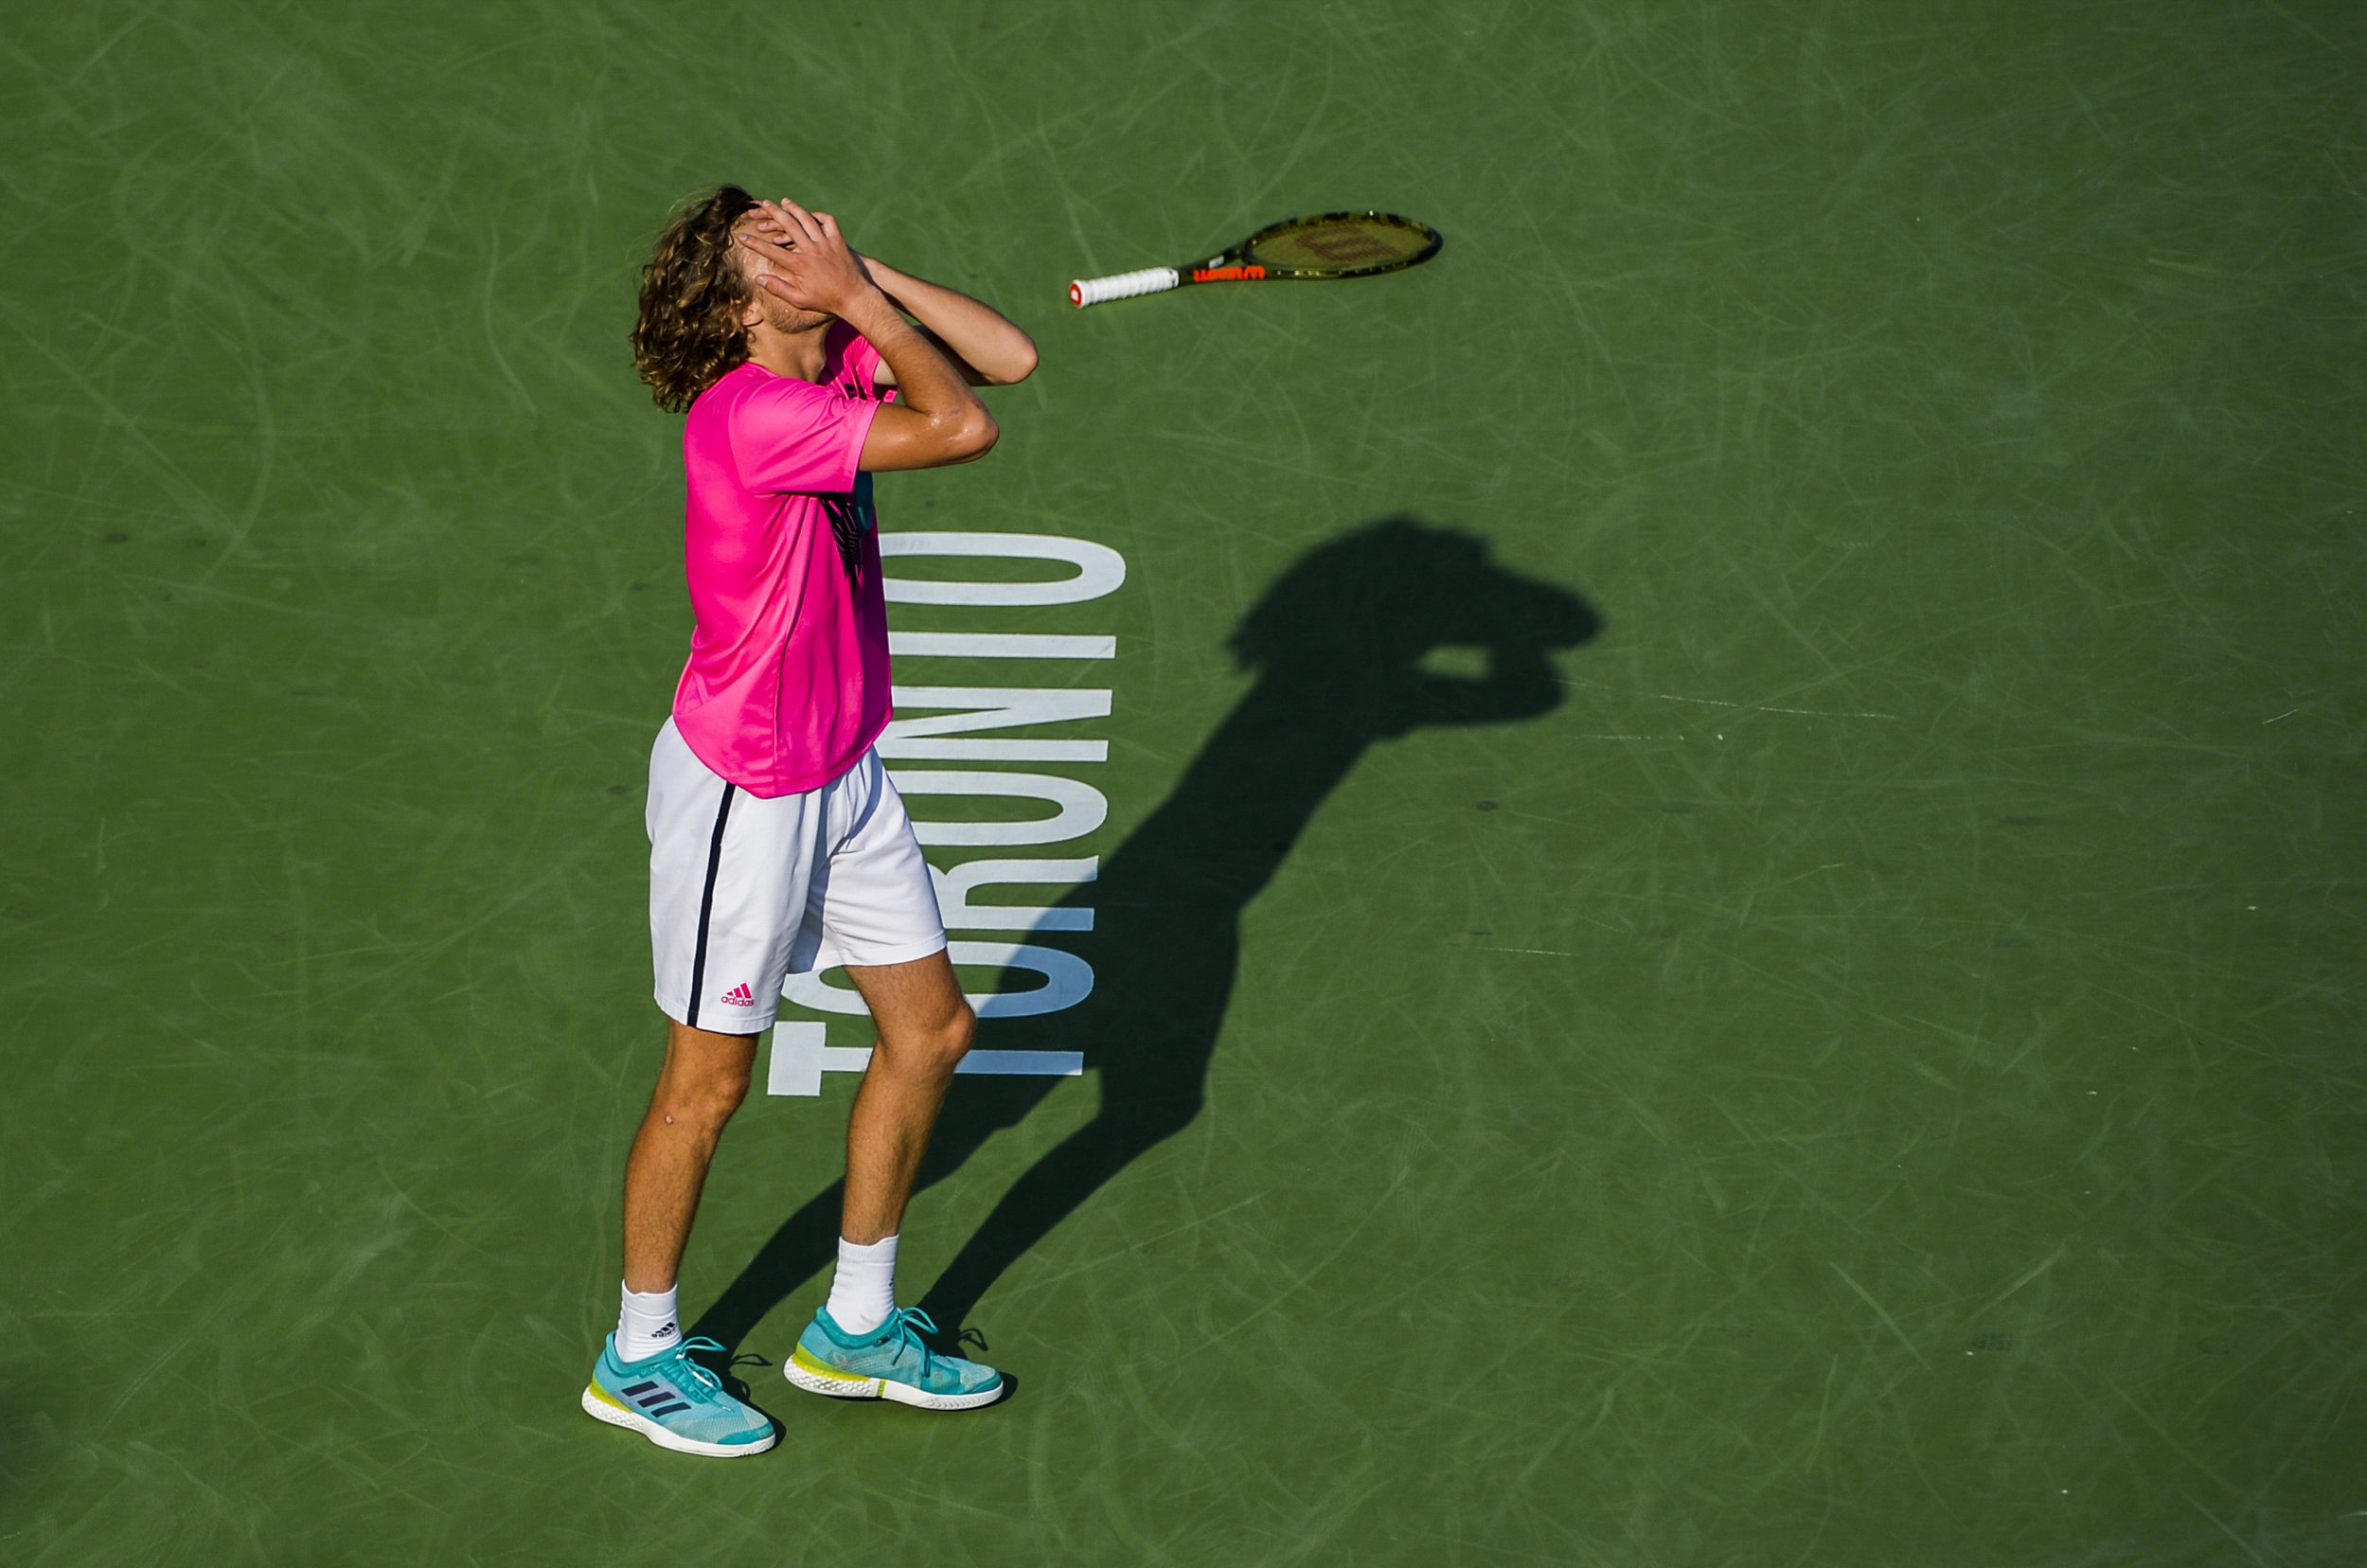 Stefanos Tsitsipas reacts after defeating Kevin Anderson in the semi-finals at the Rogers Cup on August 11, 2018 in Toronto, Canada.